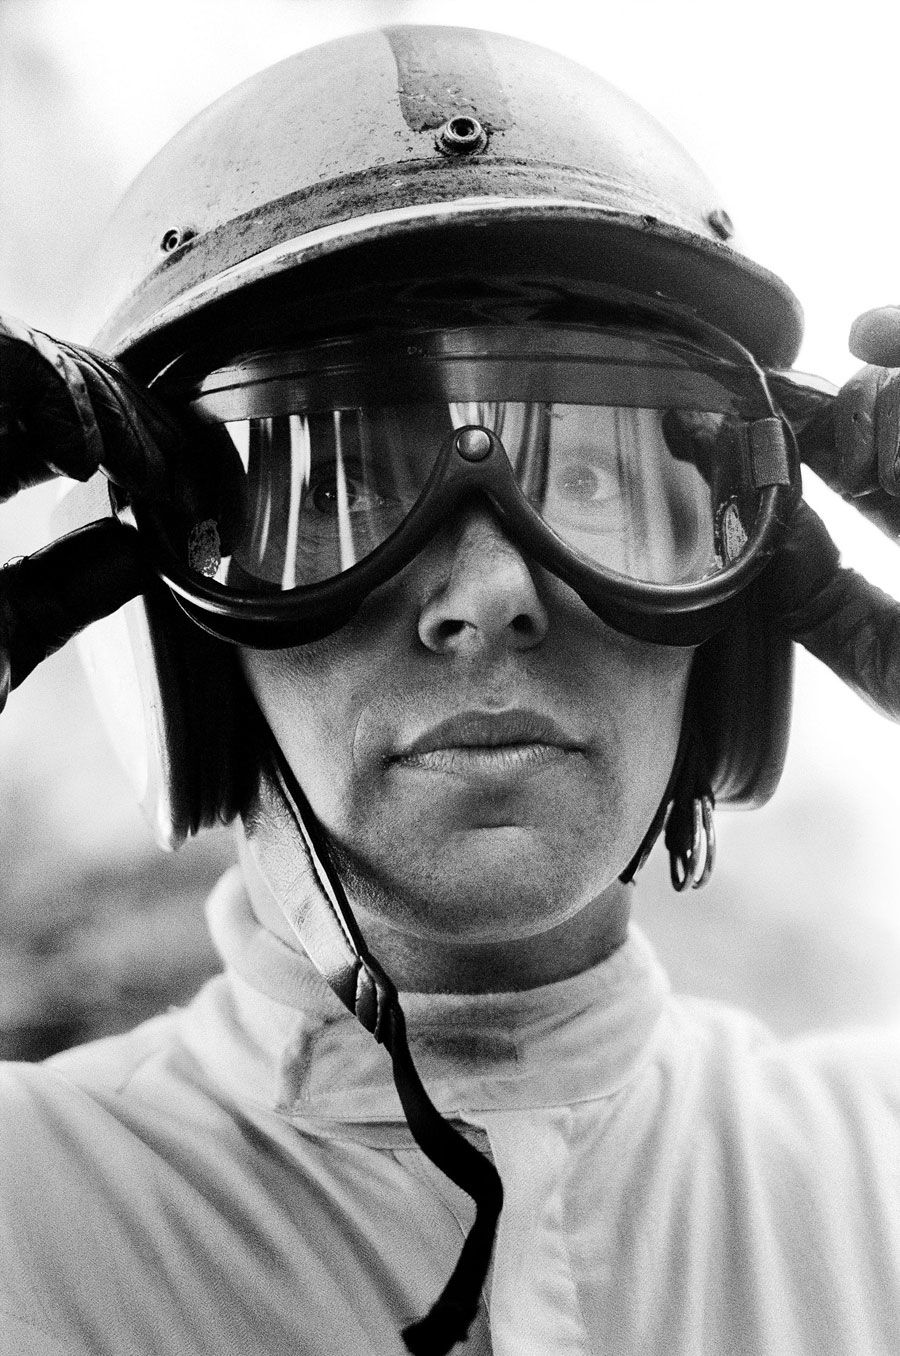 John Surtees. In all of history it has happened only once. Only one man has ever won the World Championship in both motorcycle and F1 racing– John Surtees.